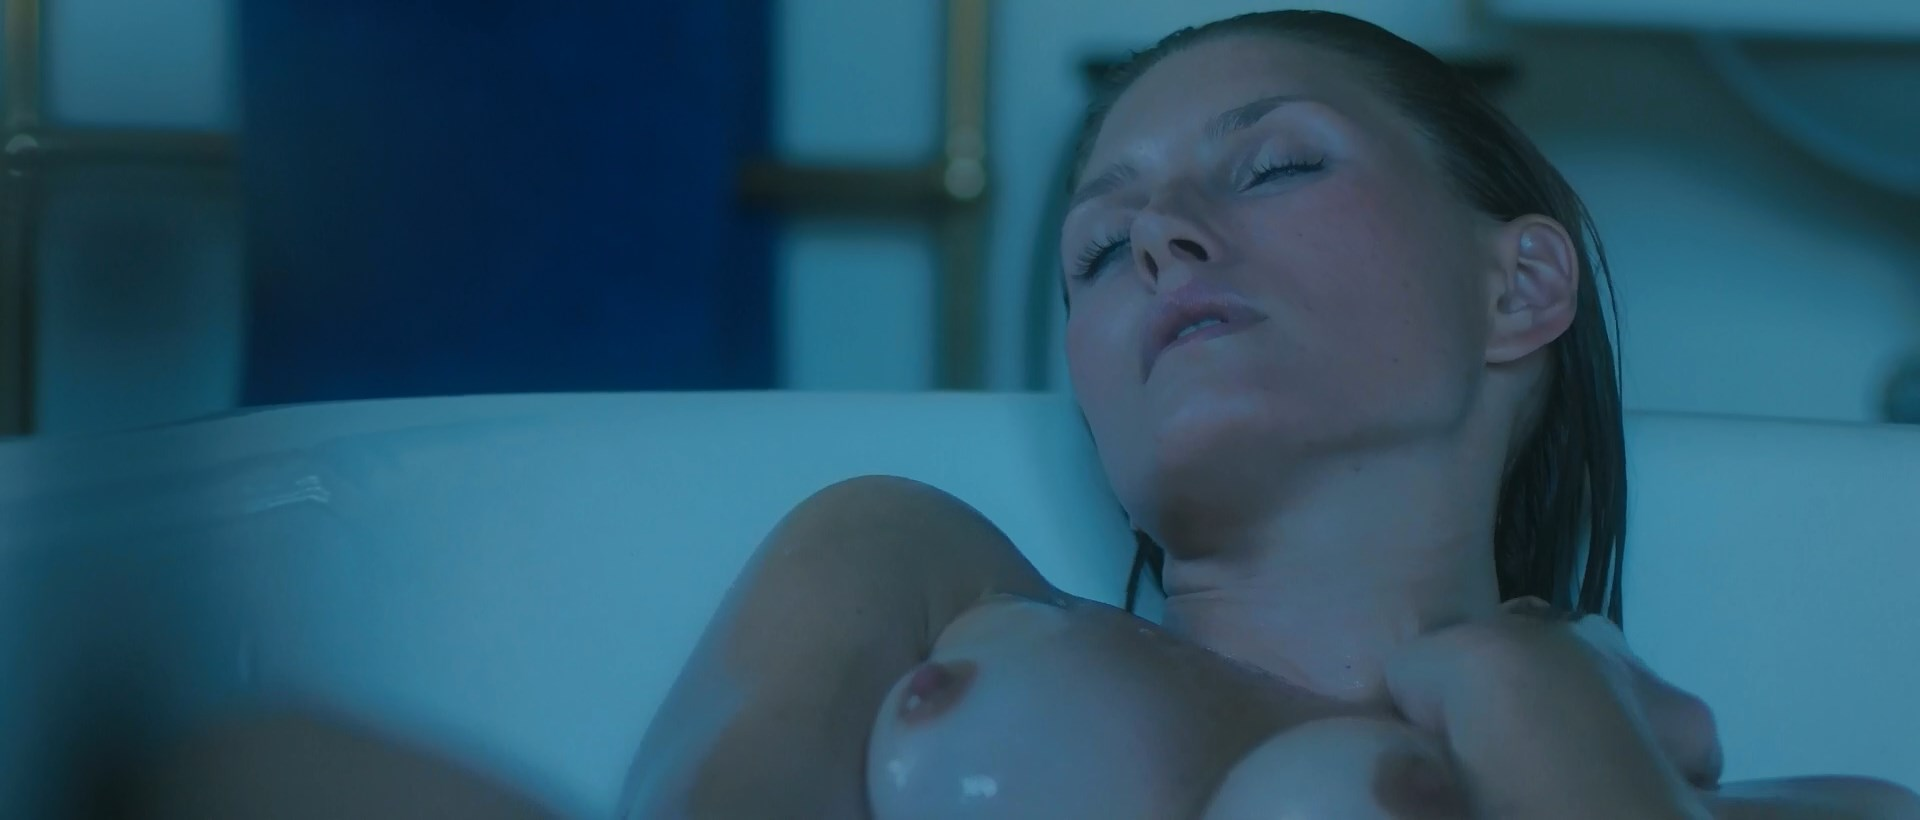 Andrea Winter nude - Blood Paradise (2018)